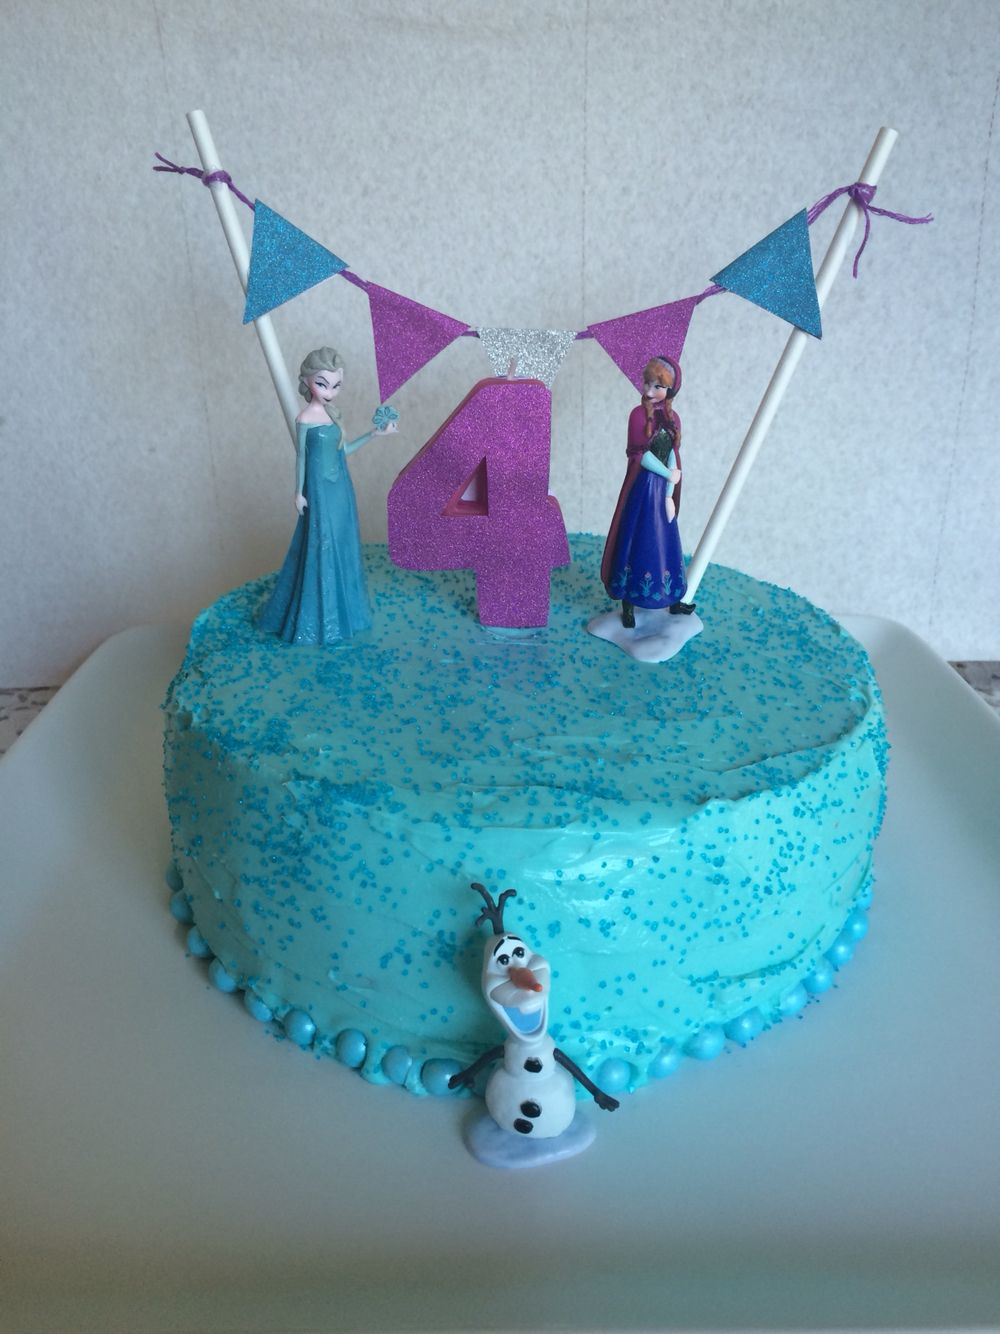 Easy Diy Frozen Birthday Cake With Images Frozen Birthday Cake